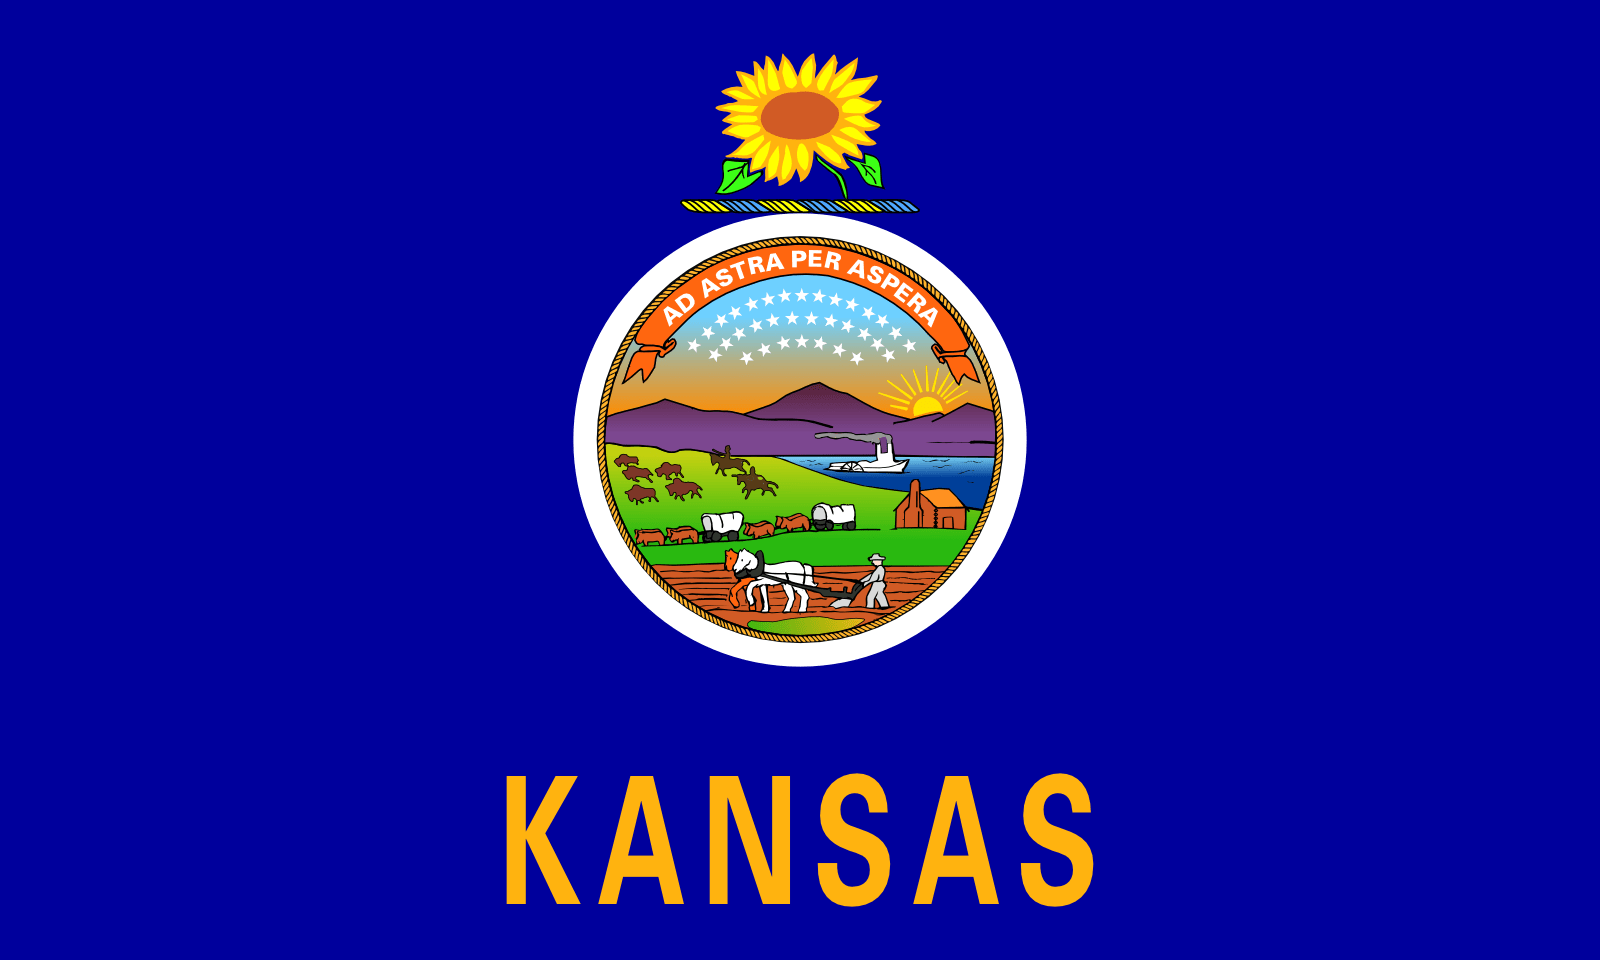 Who is the patron saint of Kansas?